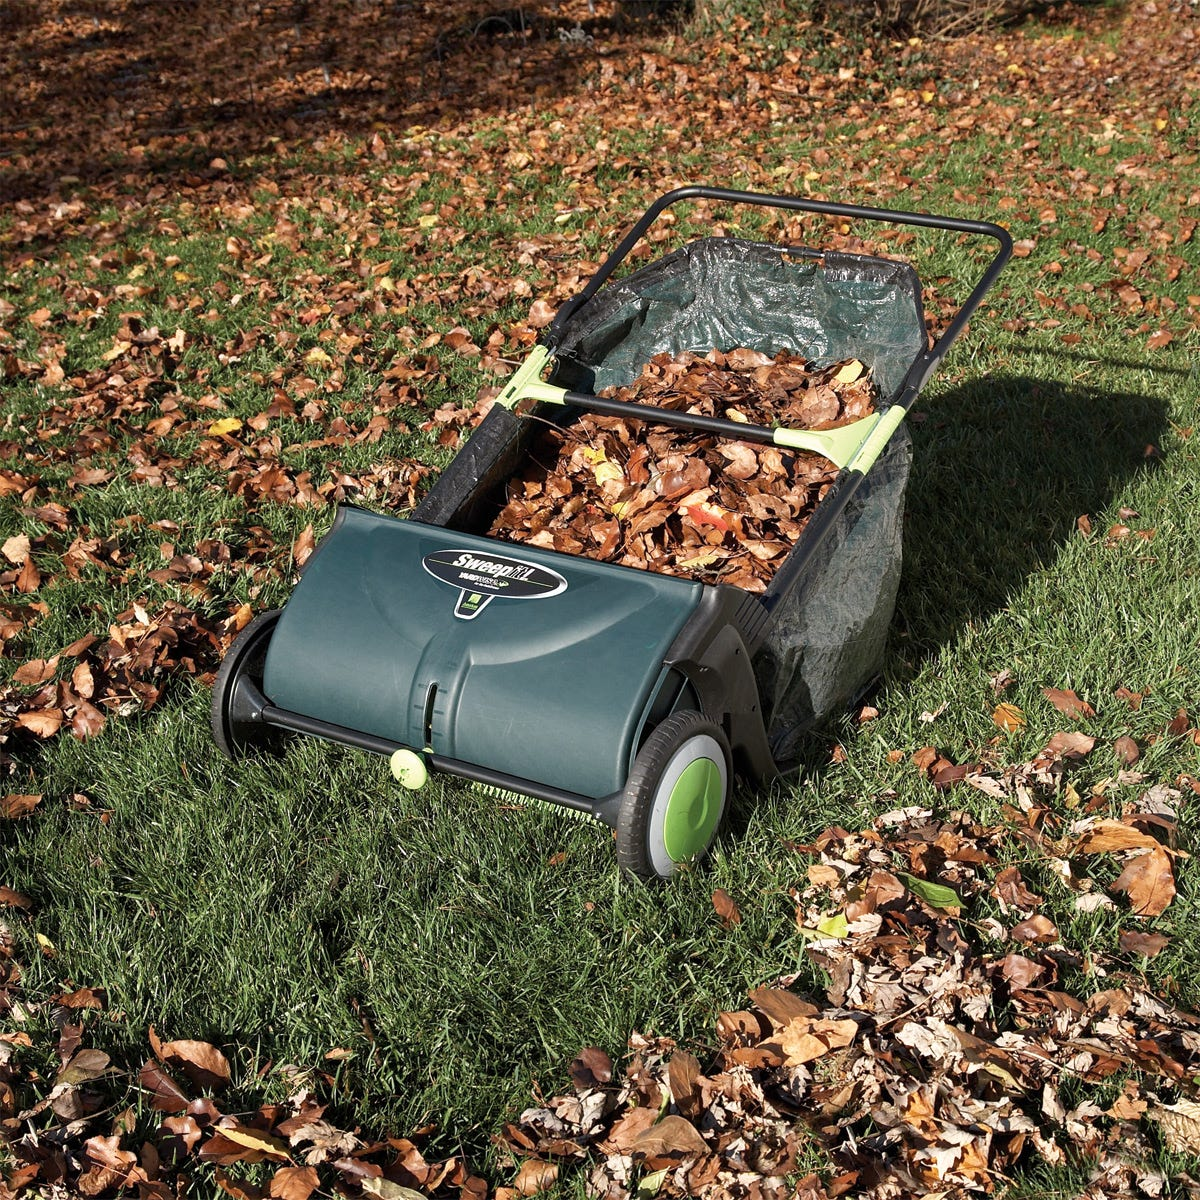 Easy Leaf Collector From Sporty S Tool Shop